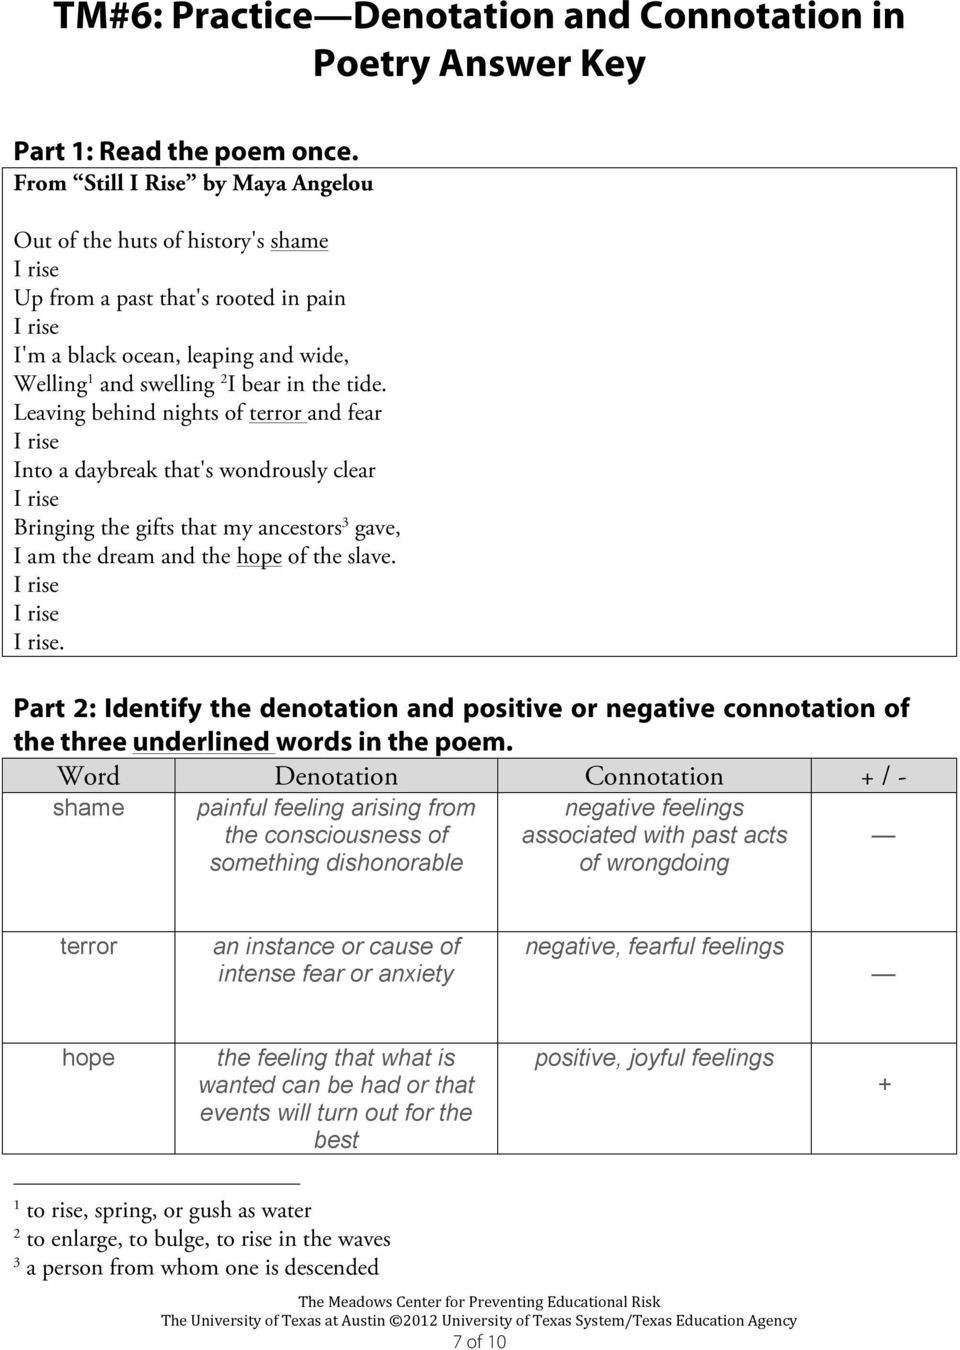 Denotation and Connotation Worksheet Denotation & Connotation Writing Module Teacher Masters